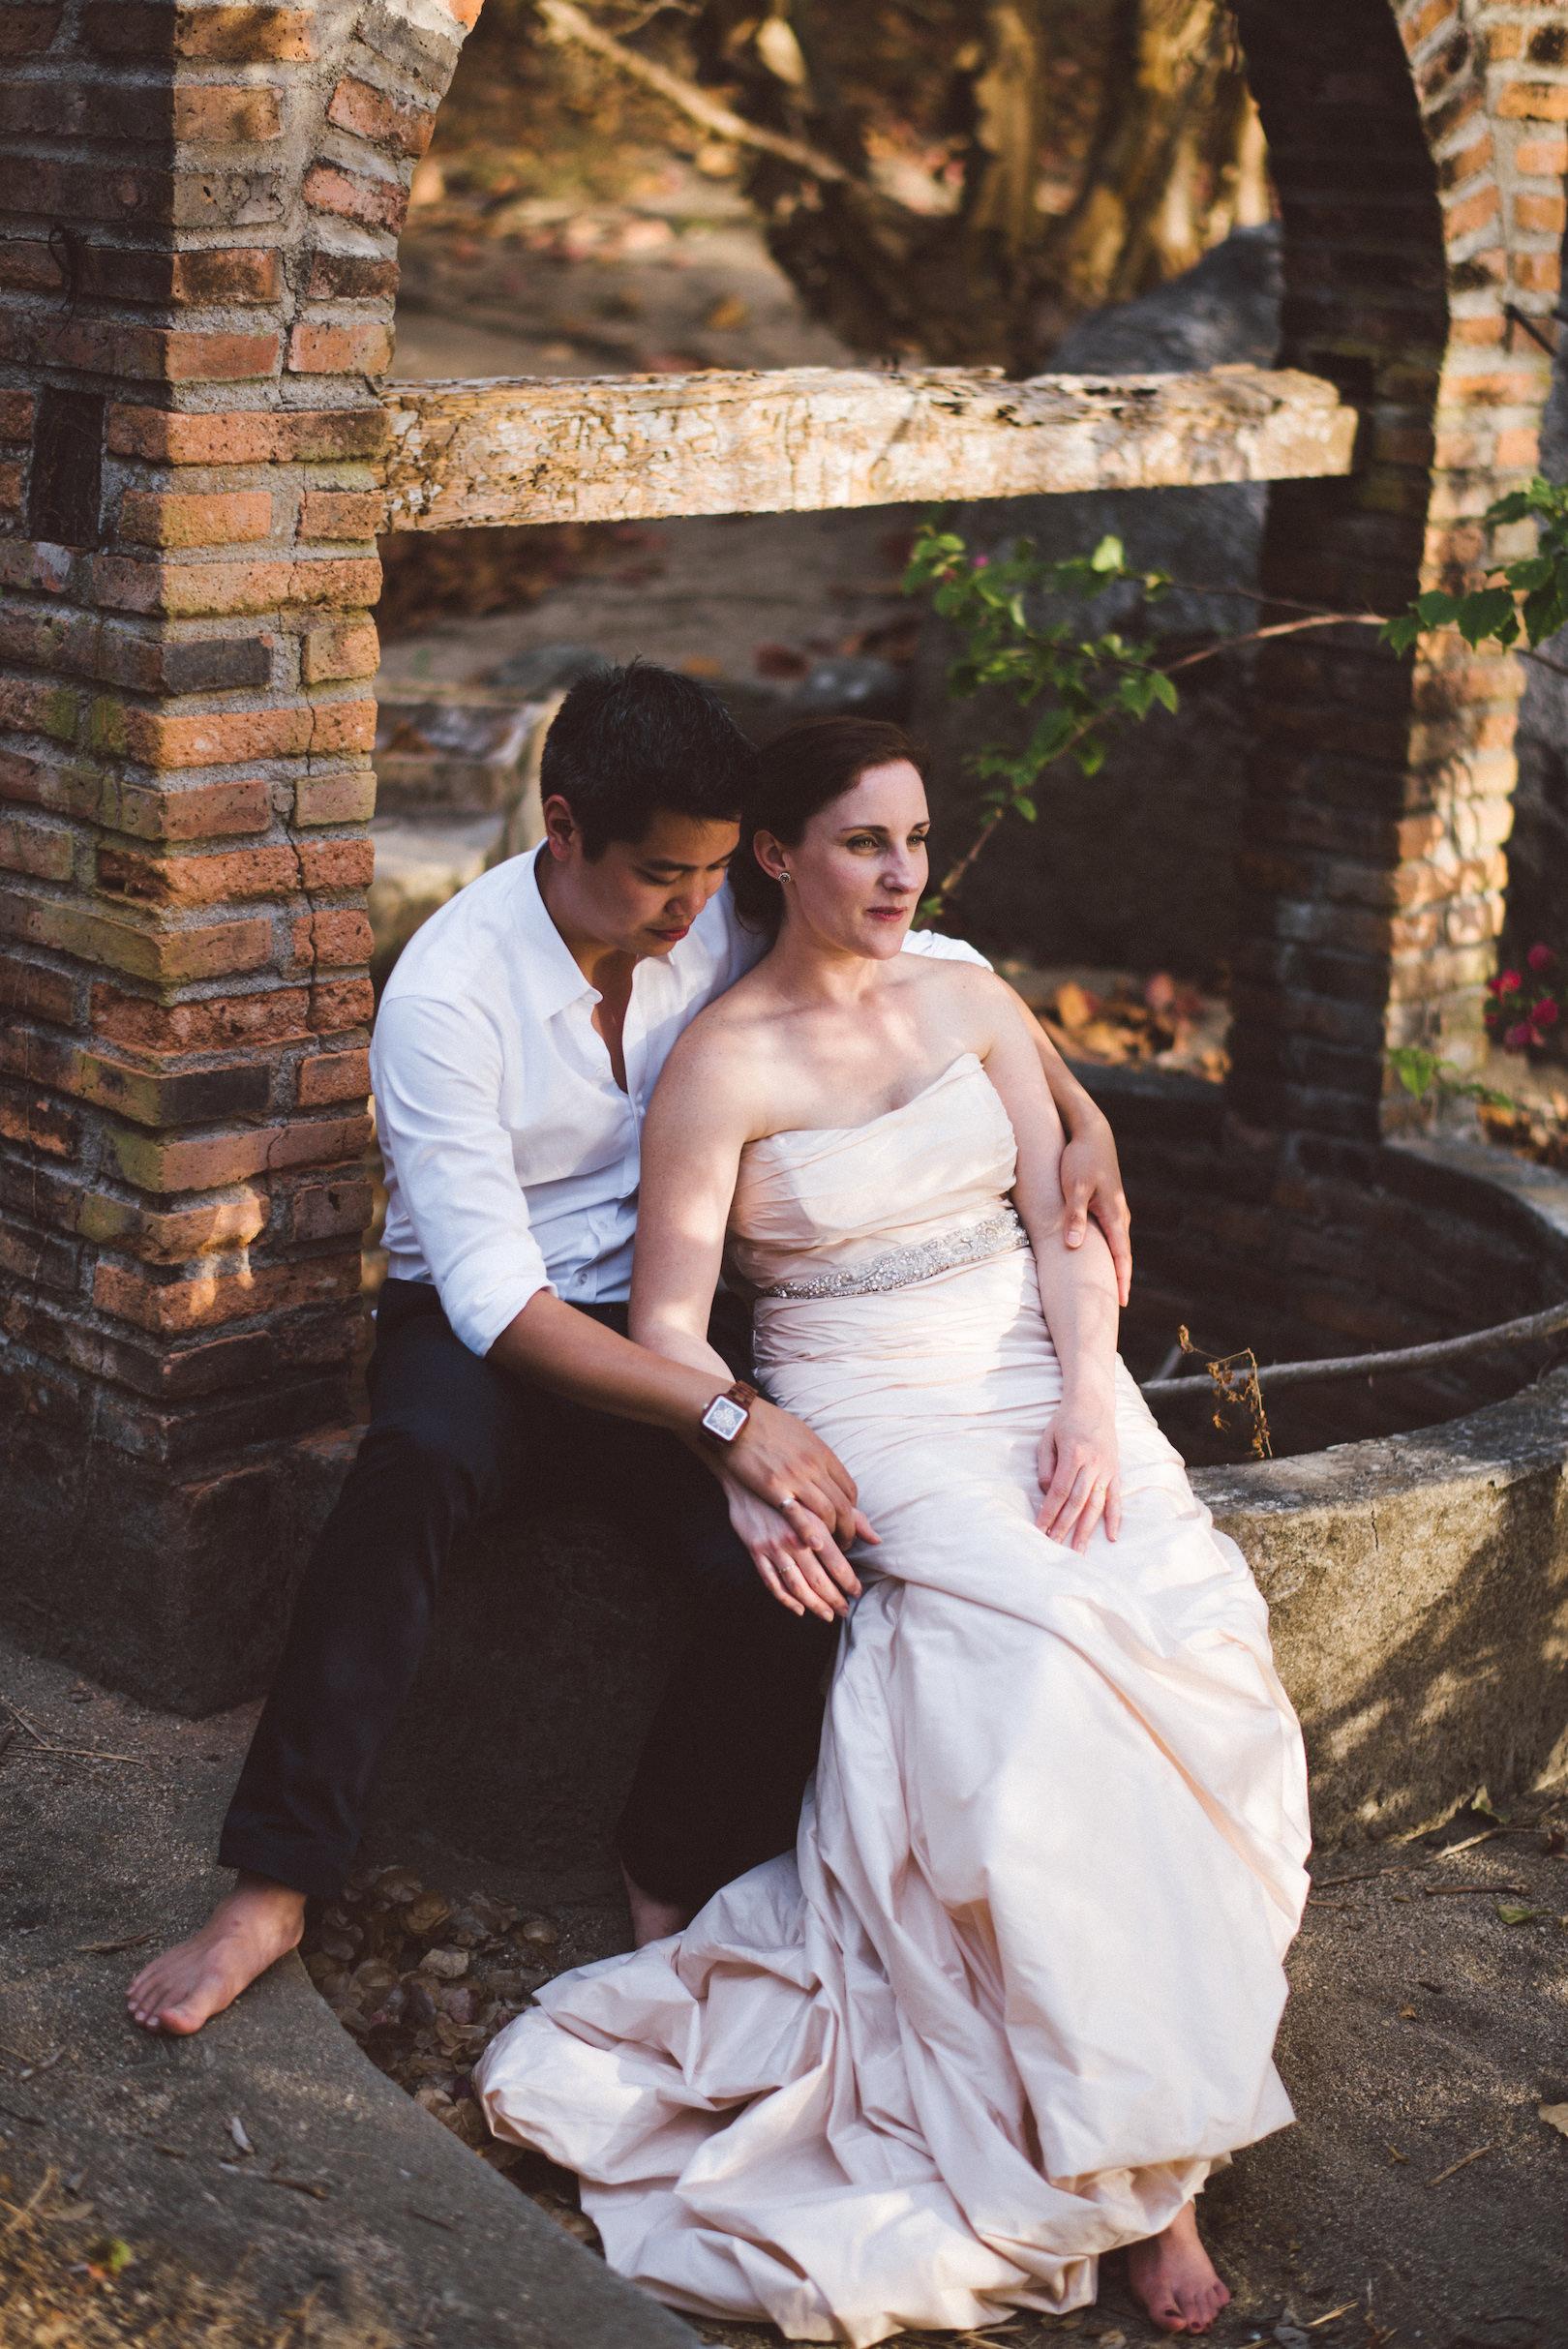 Steve & Mika - Sayulita - © Dallas Kolotylo Photography - 807